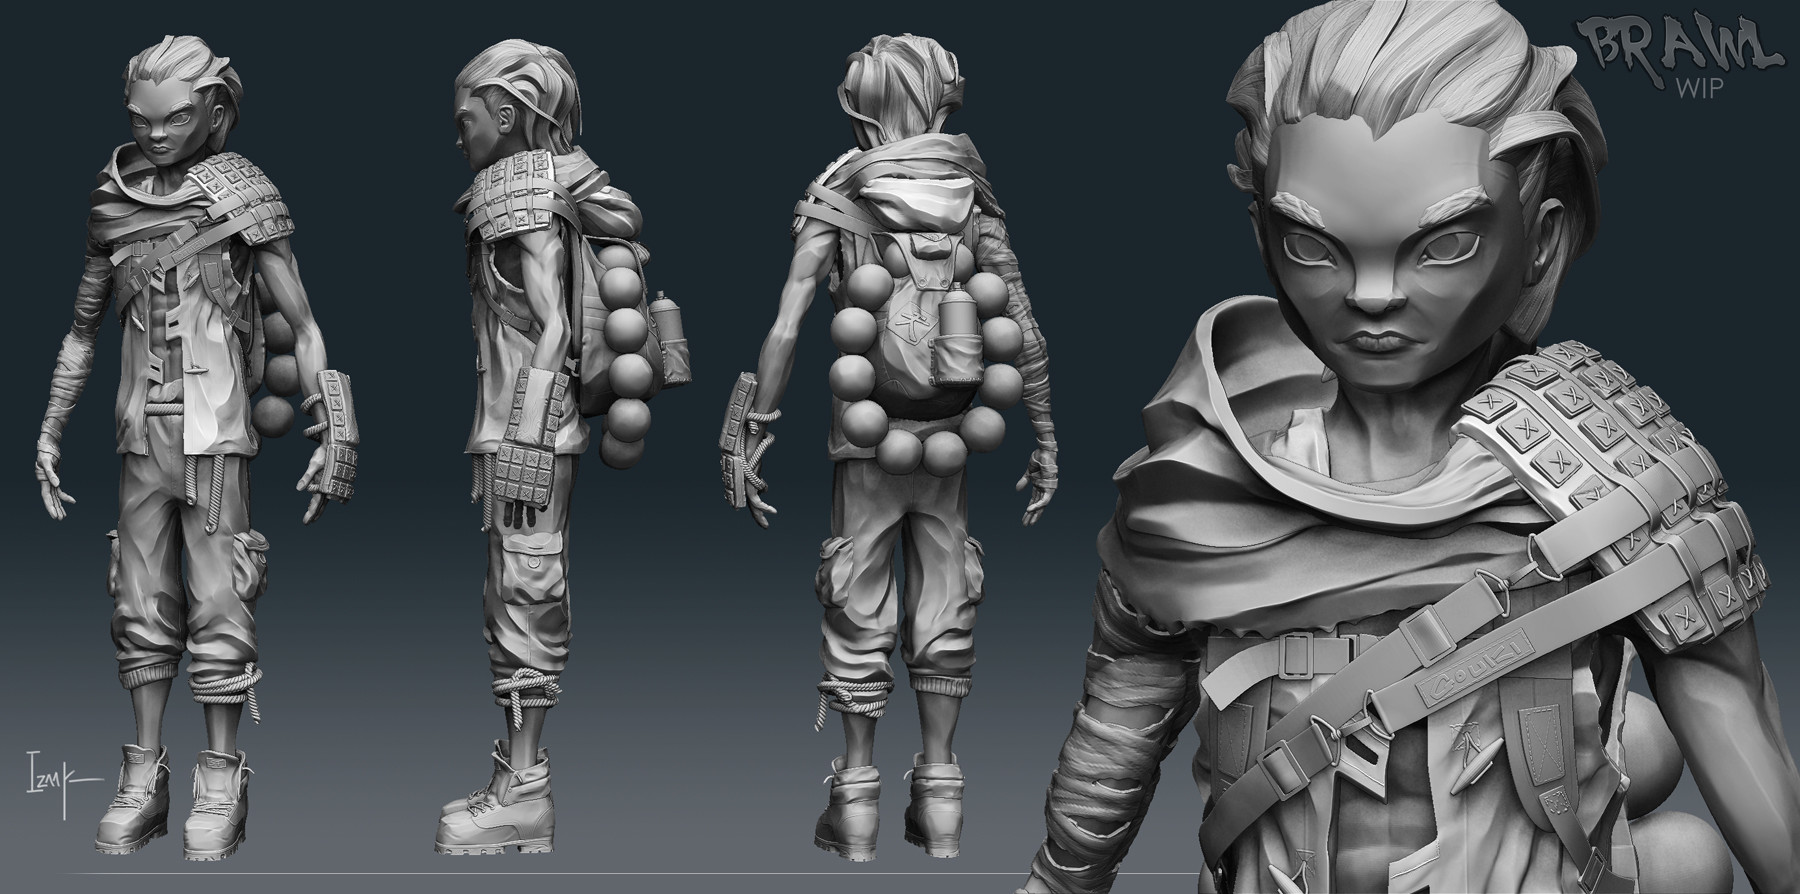 Izaak moody ka high poly